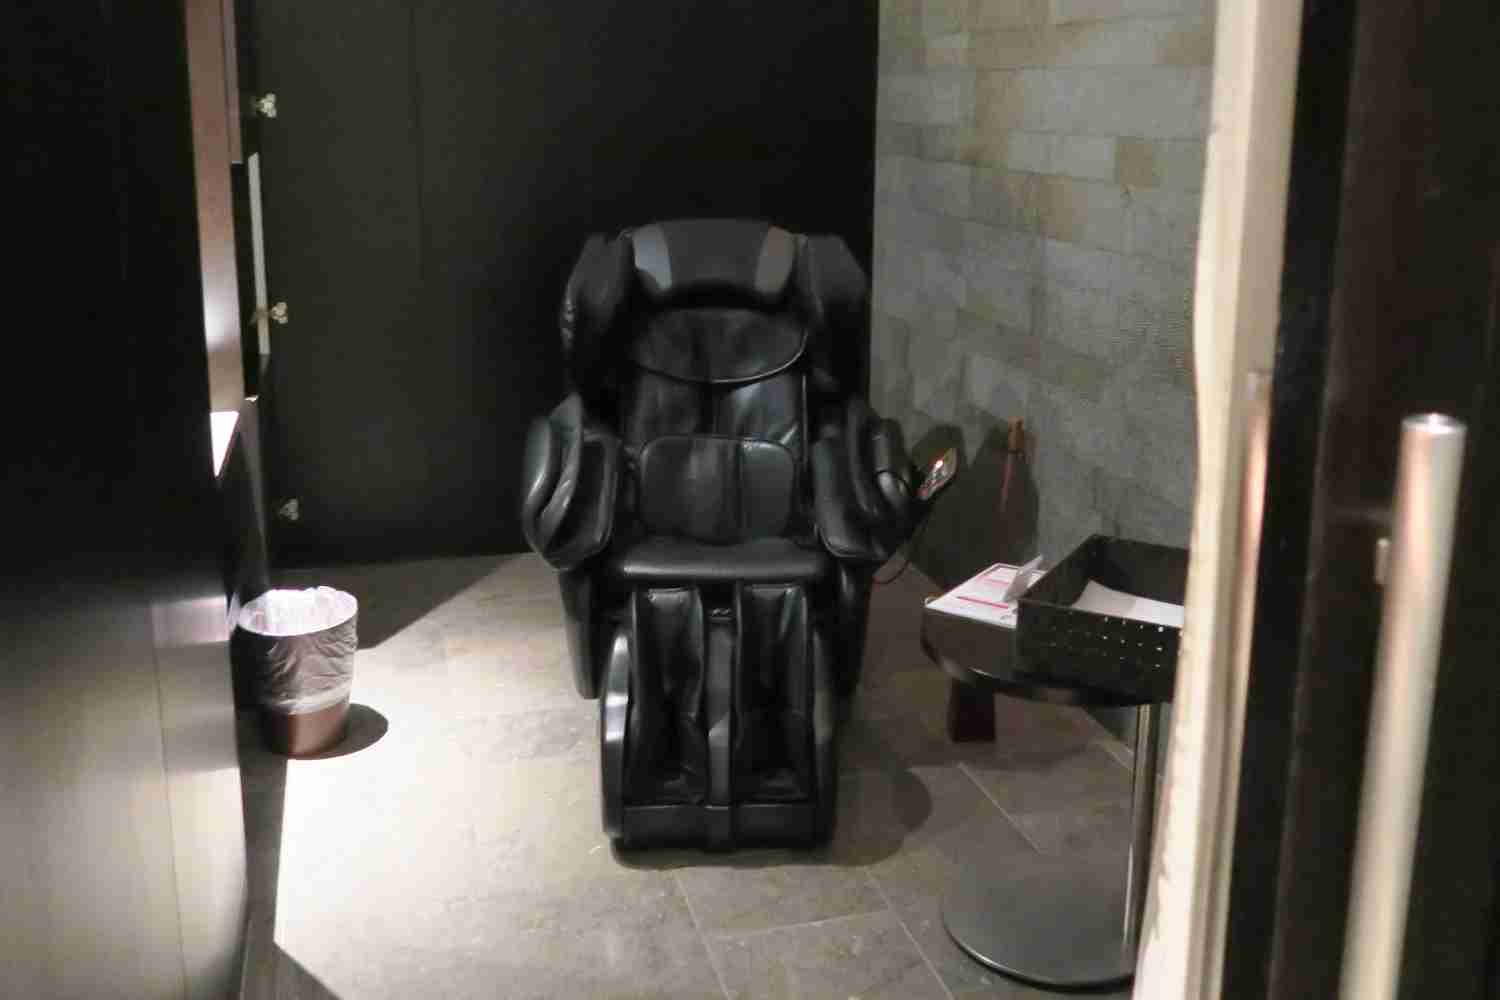 A massage chair in a room previously used for massages.